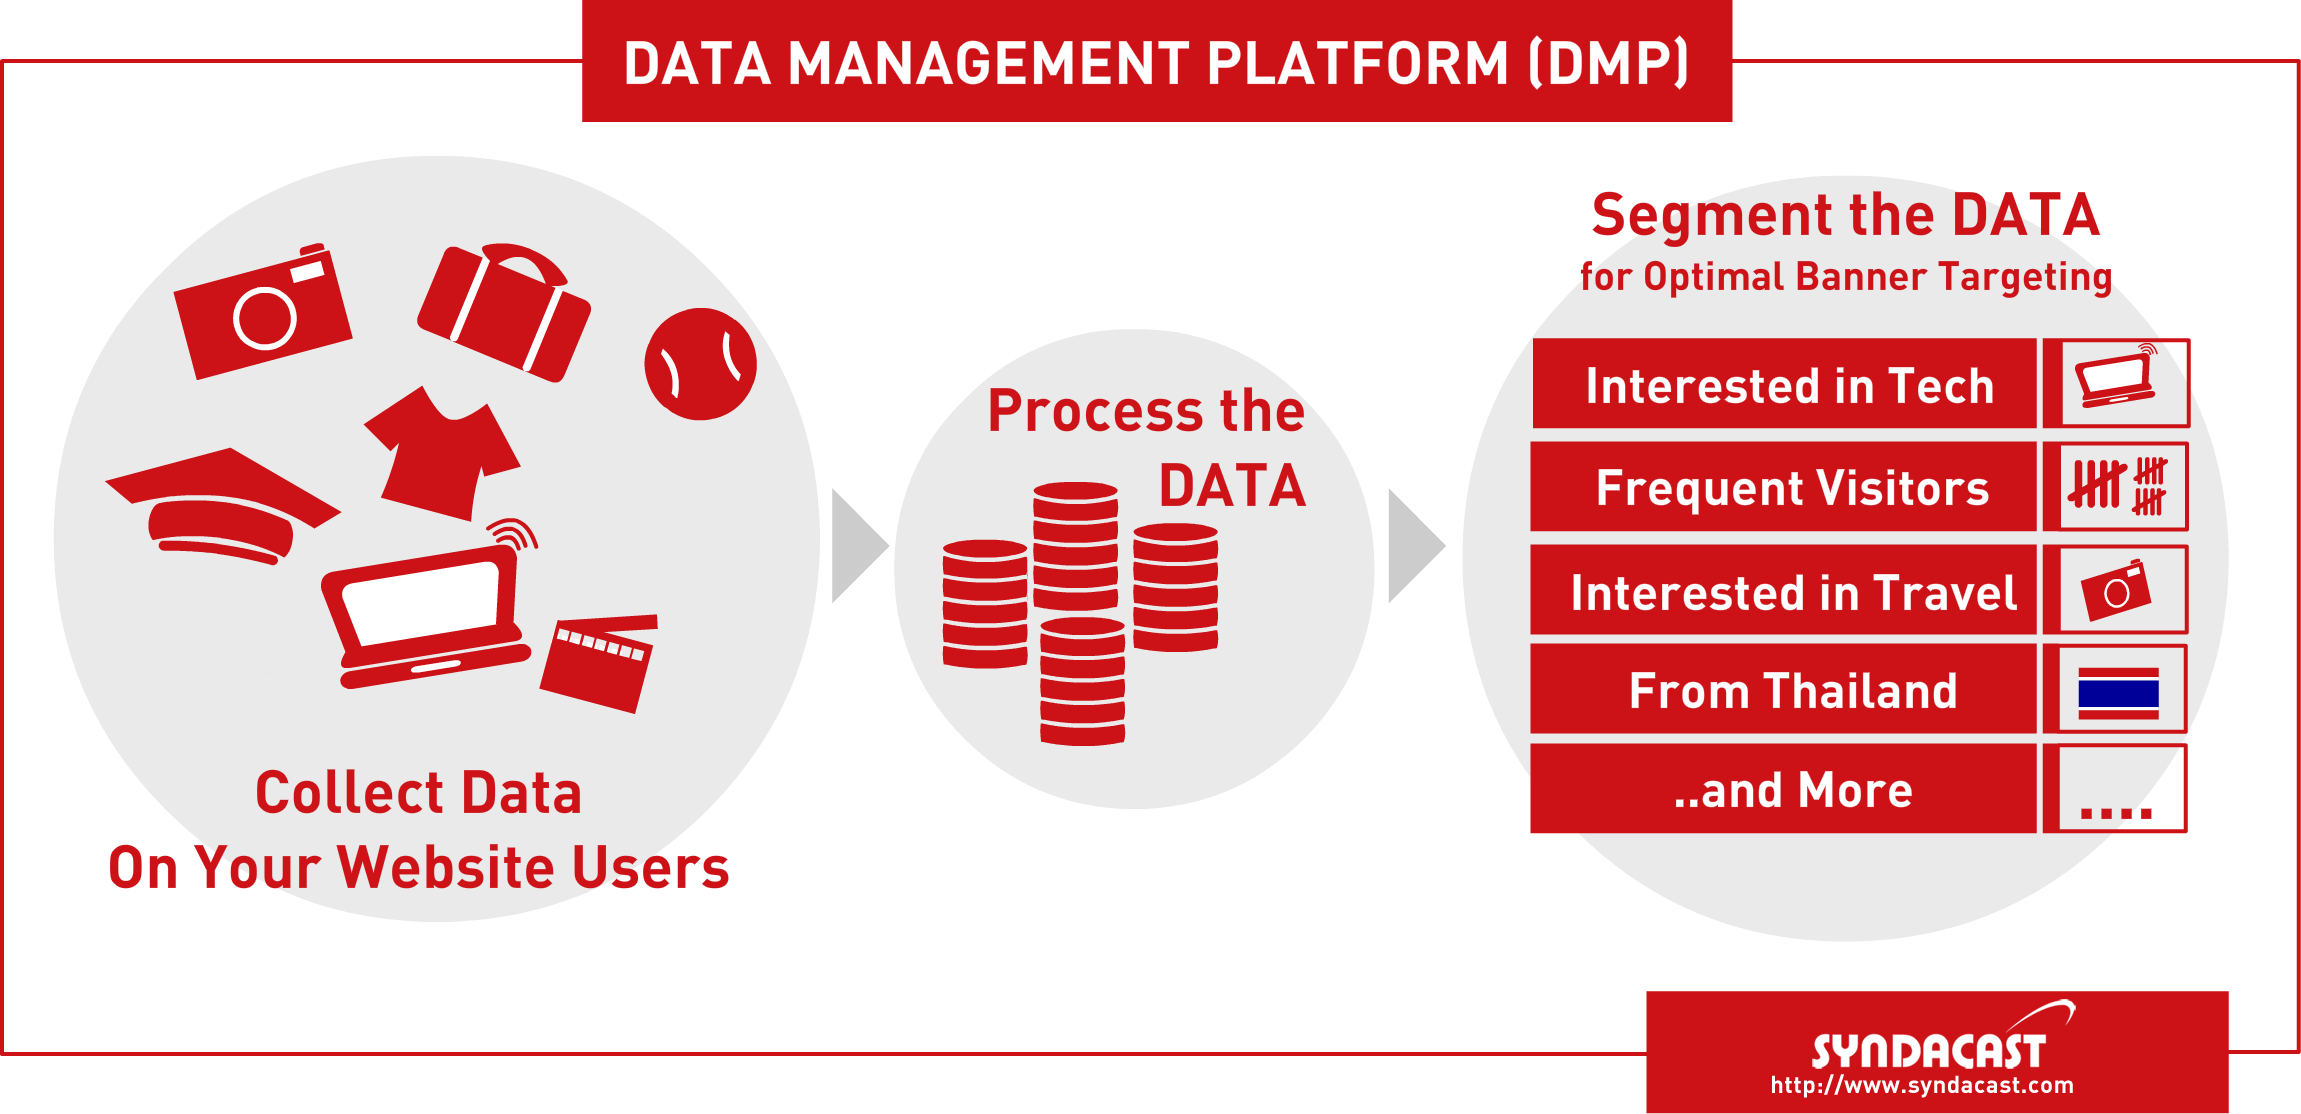 Syndacast DMP Data Management Platform